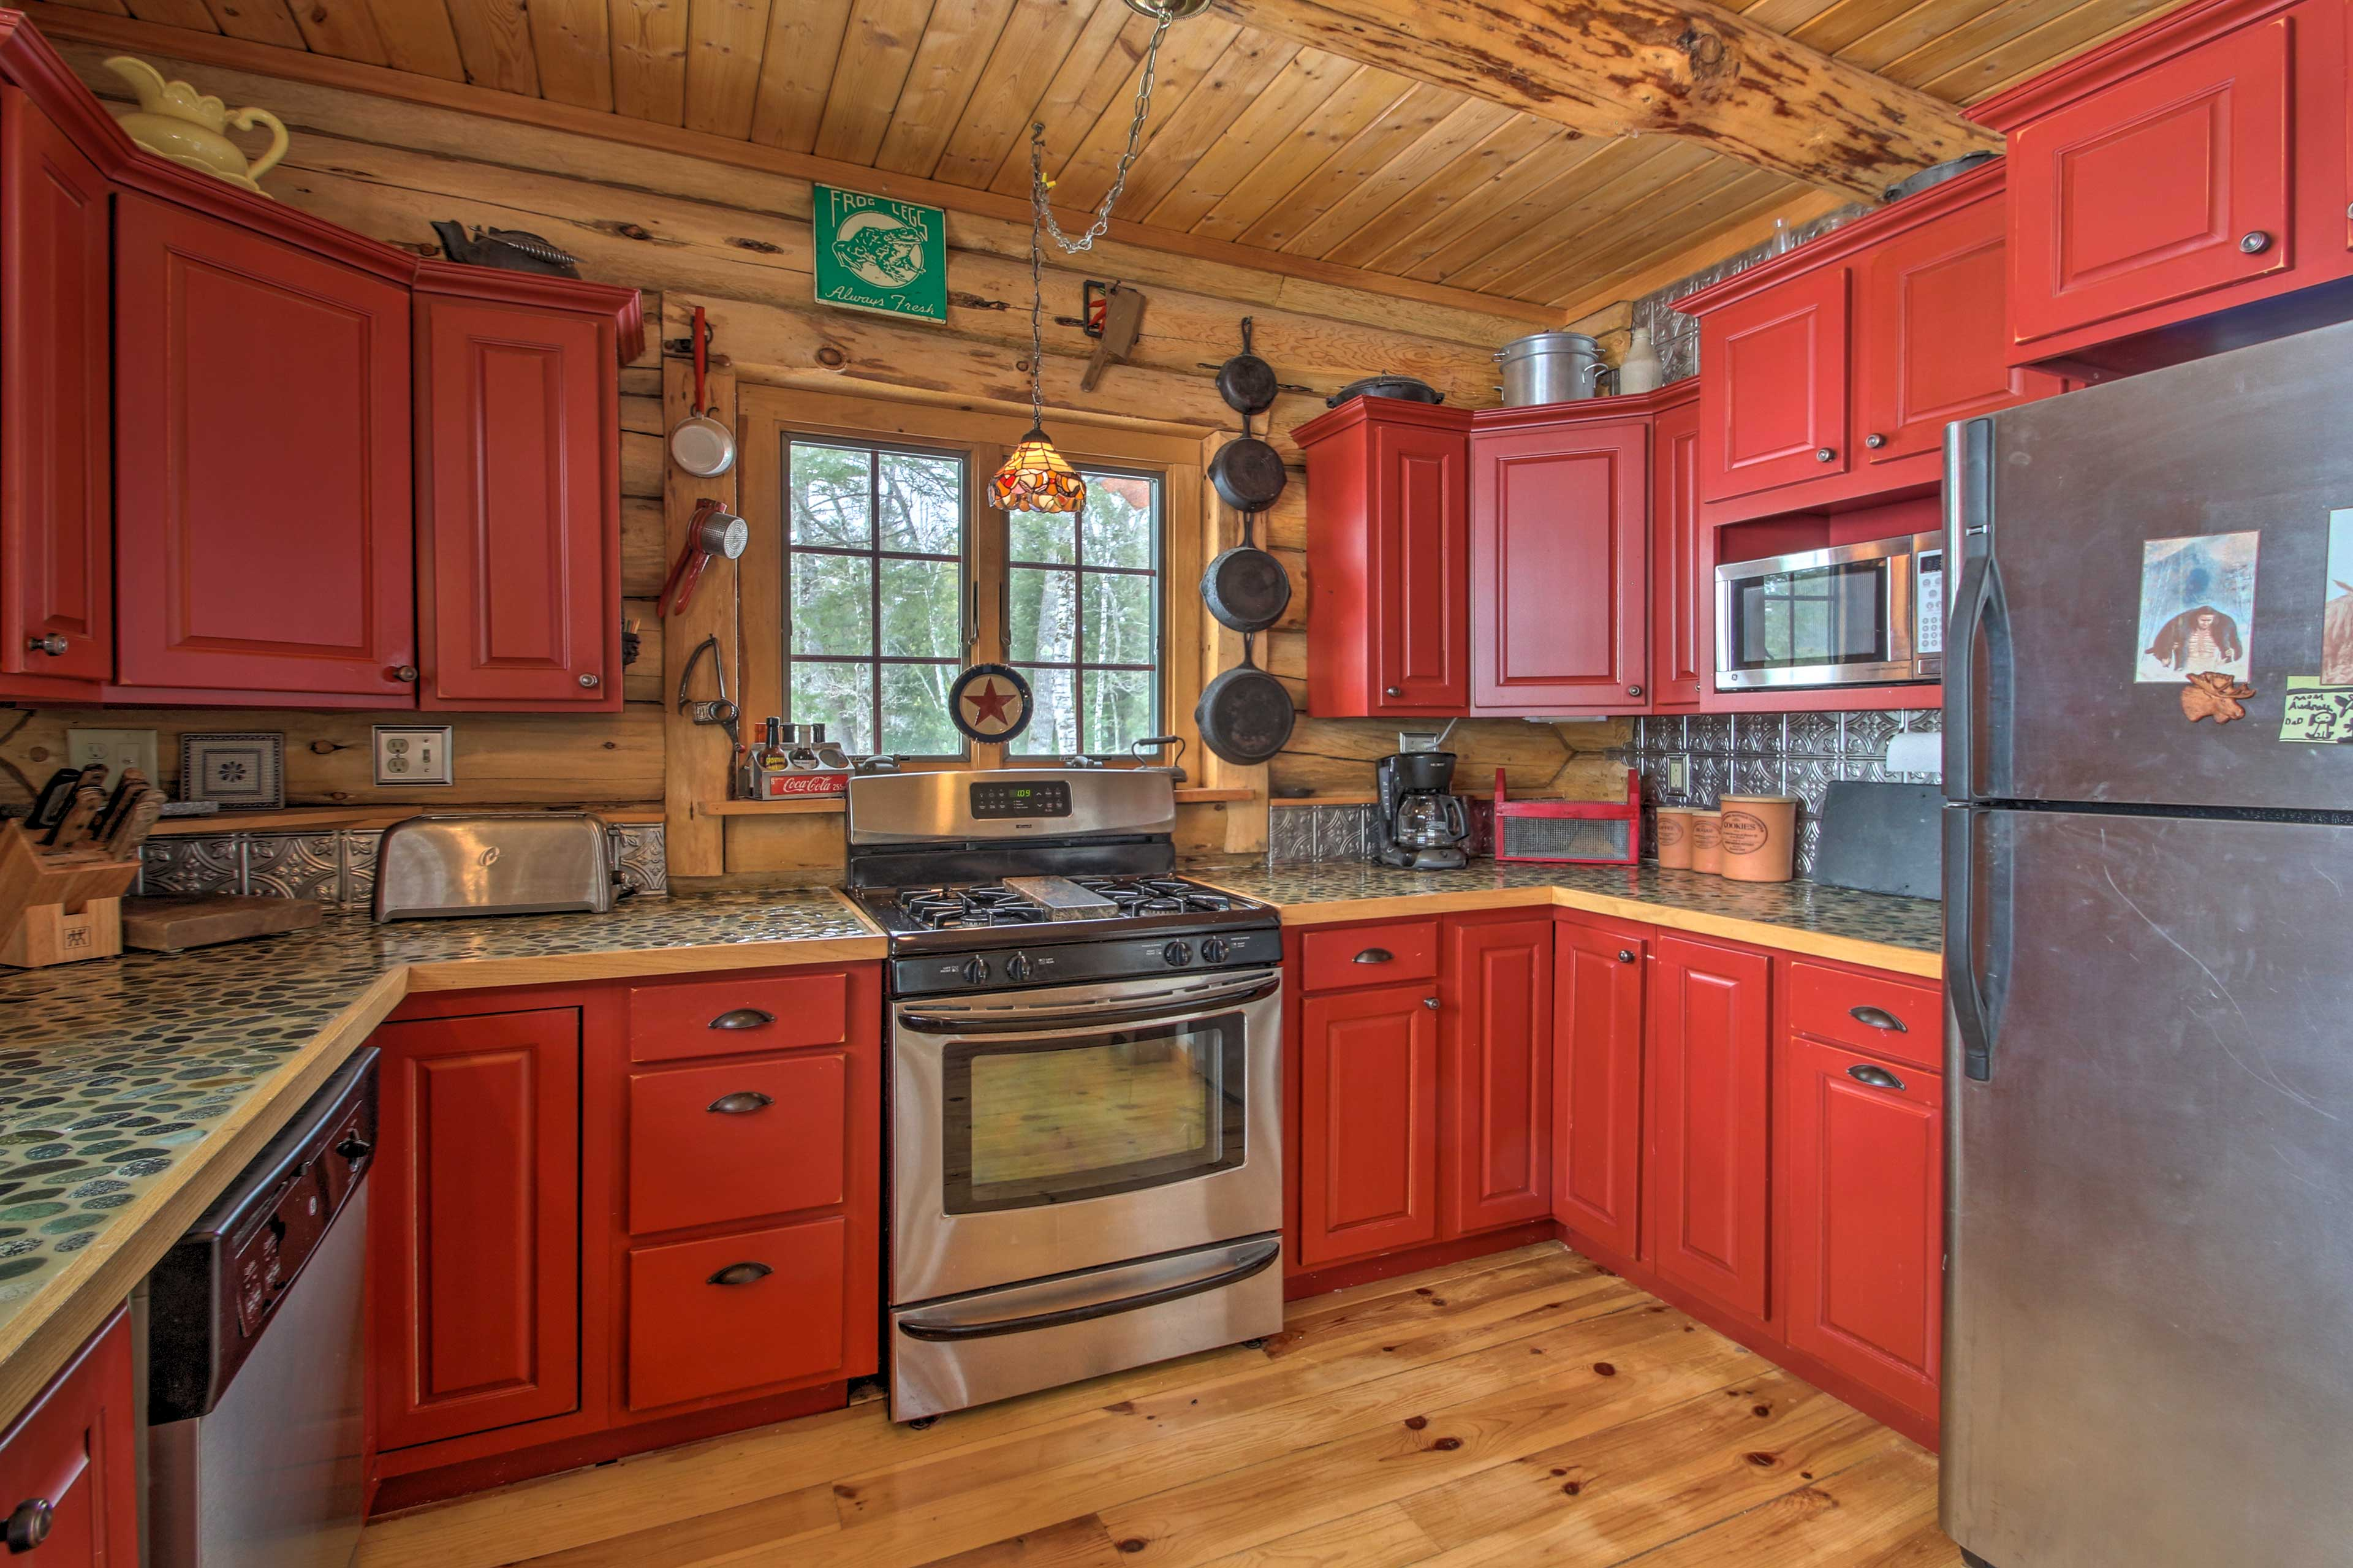 This kitchen comes fully equipped to handle all of your home-cooking needs.